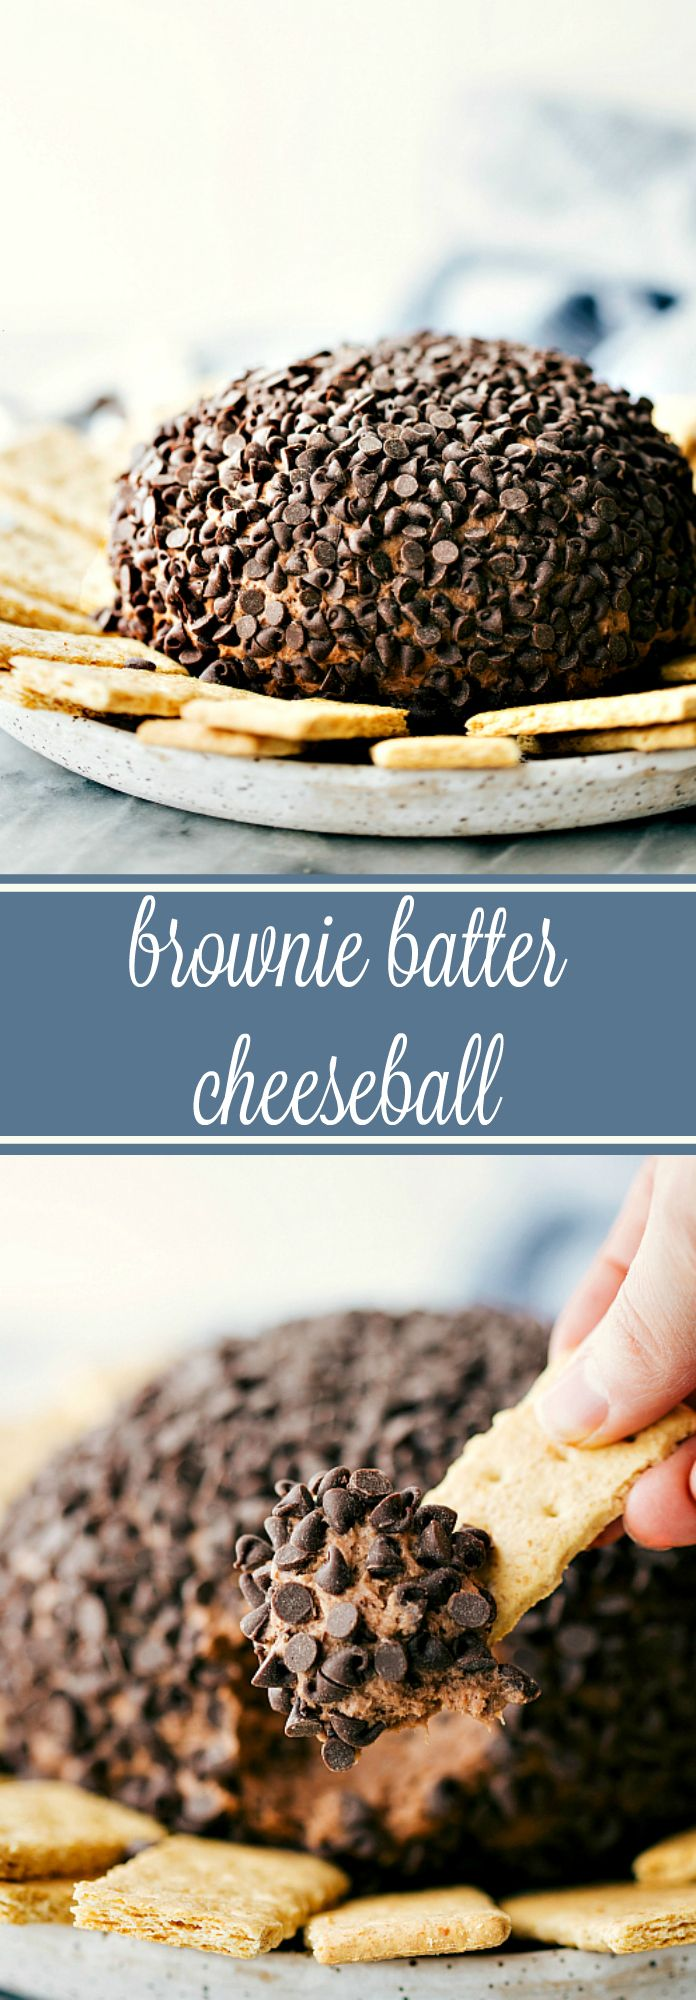 Brownie Batter Cheeseball - SIMPLE and delicious brownie batter cheesecake ball!